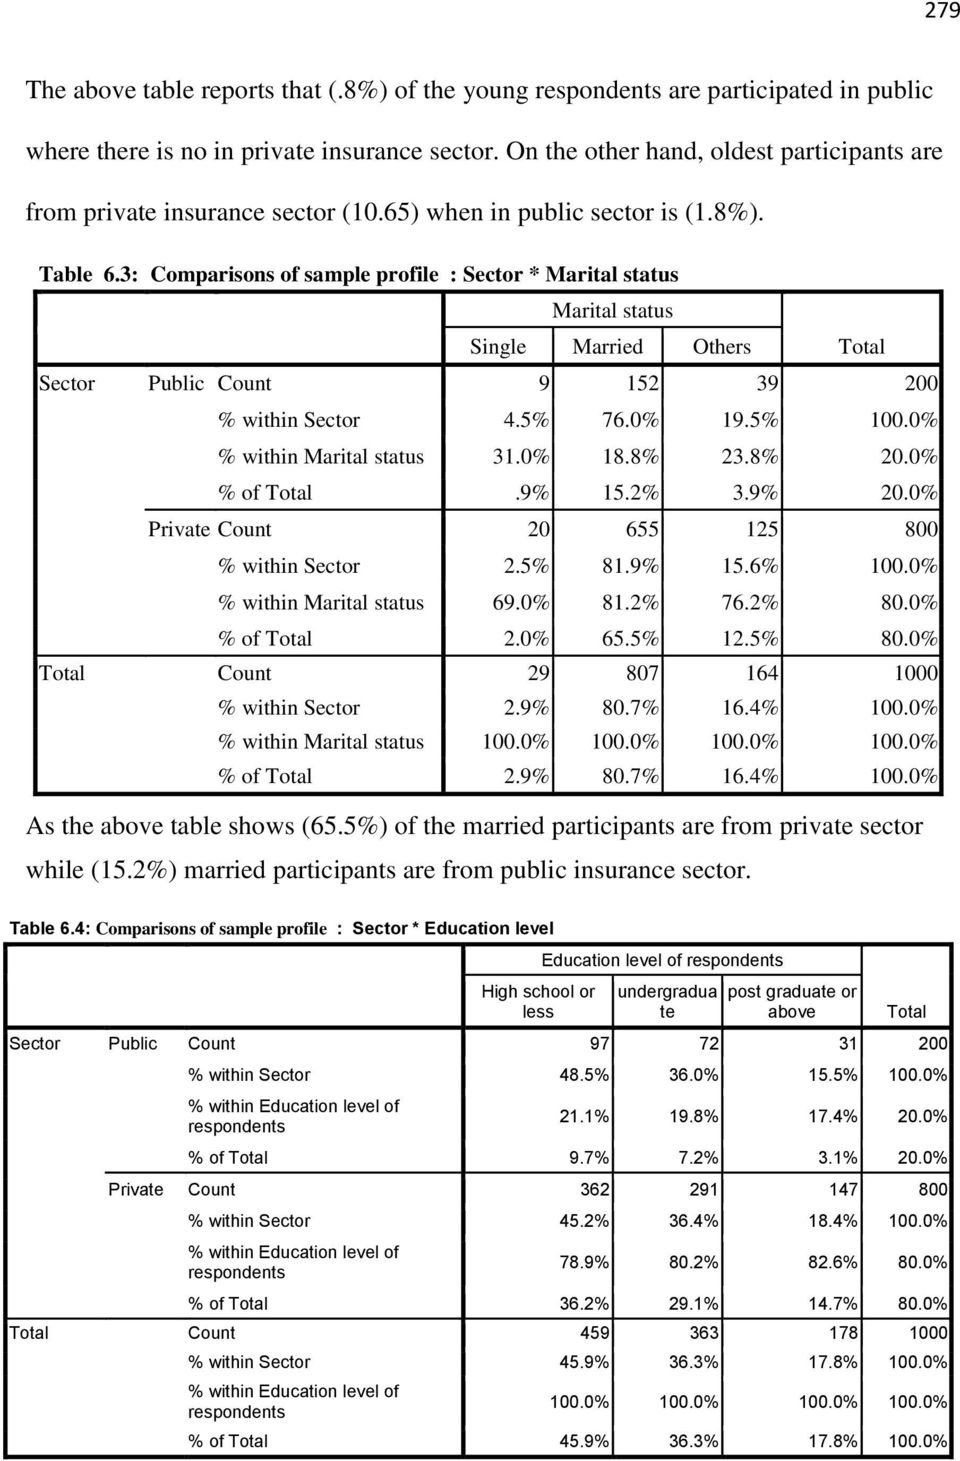 3: Comparisons of sample profile : Sector * Marital status Marital status Single Married Others Total Sector Public Count 9 152 39 200 % within Sector 4.5% 76.0% 19.5% 100.